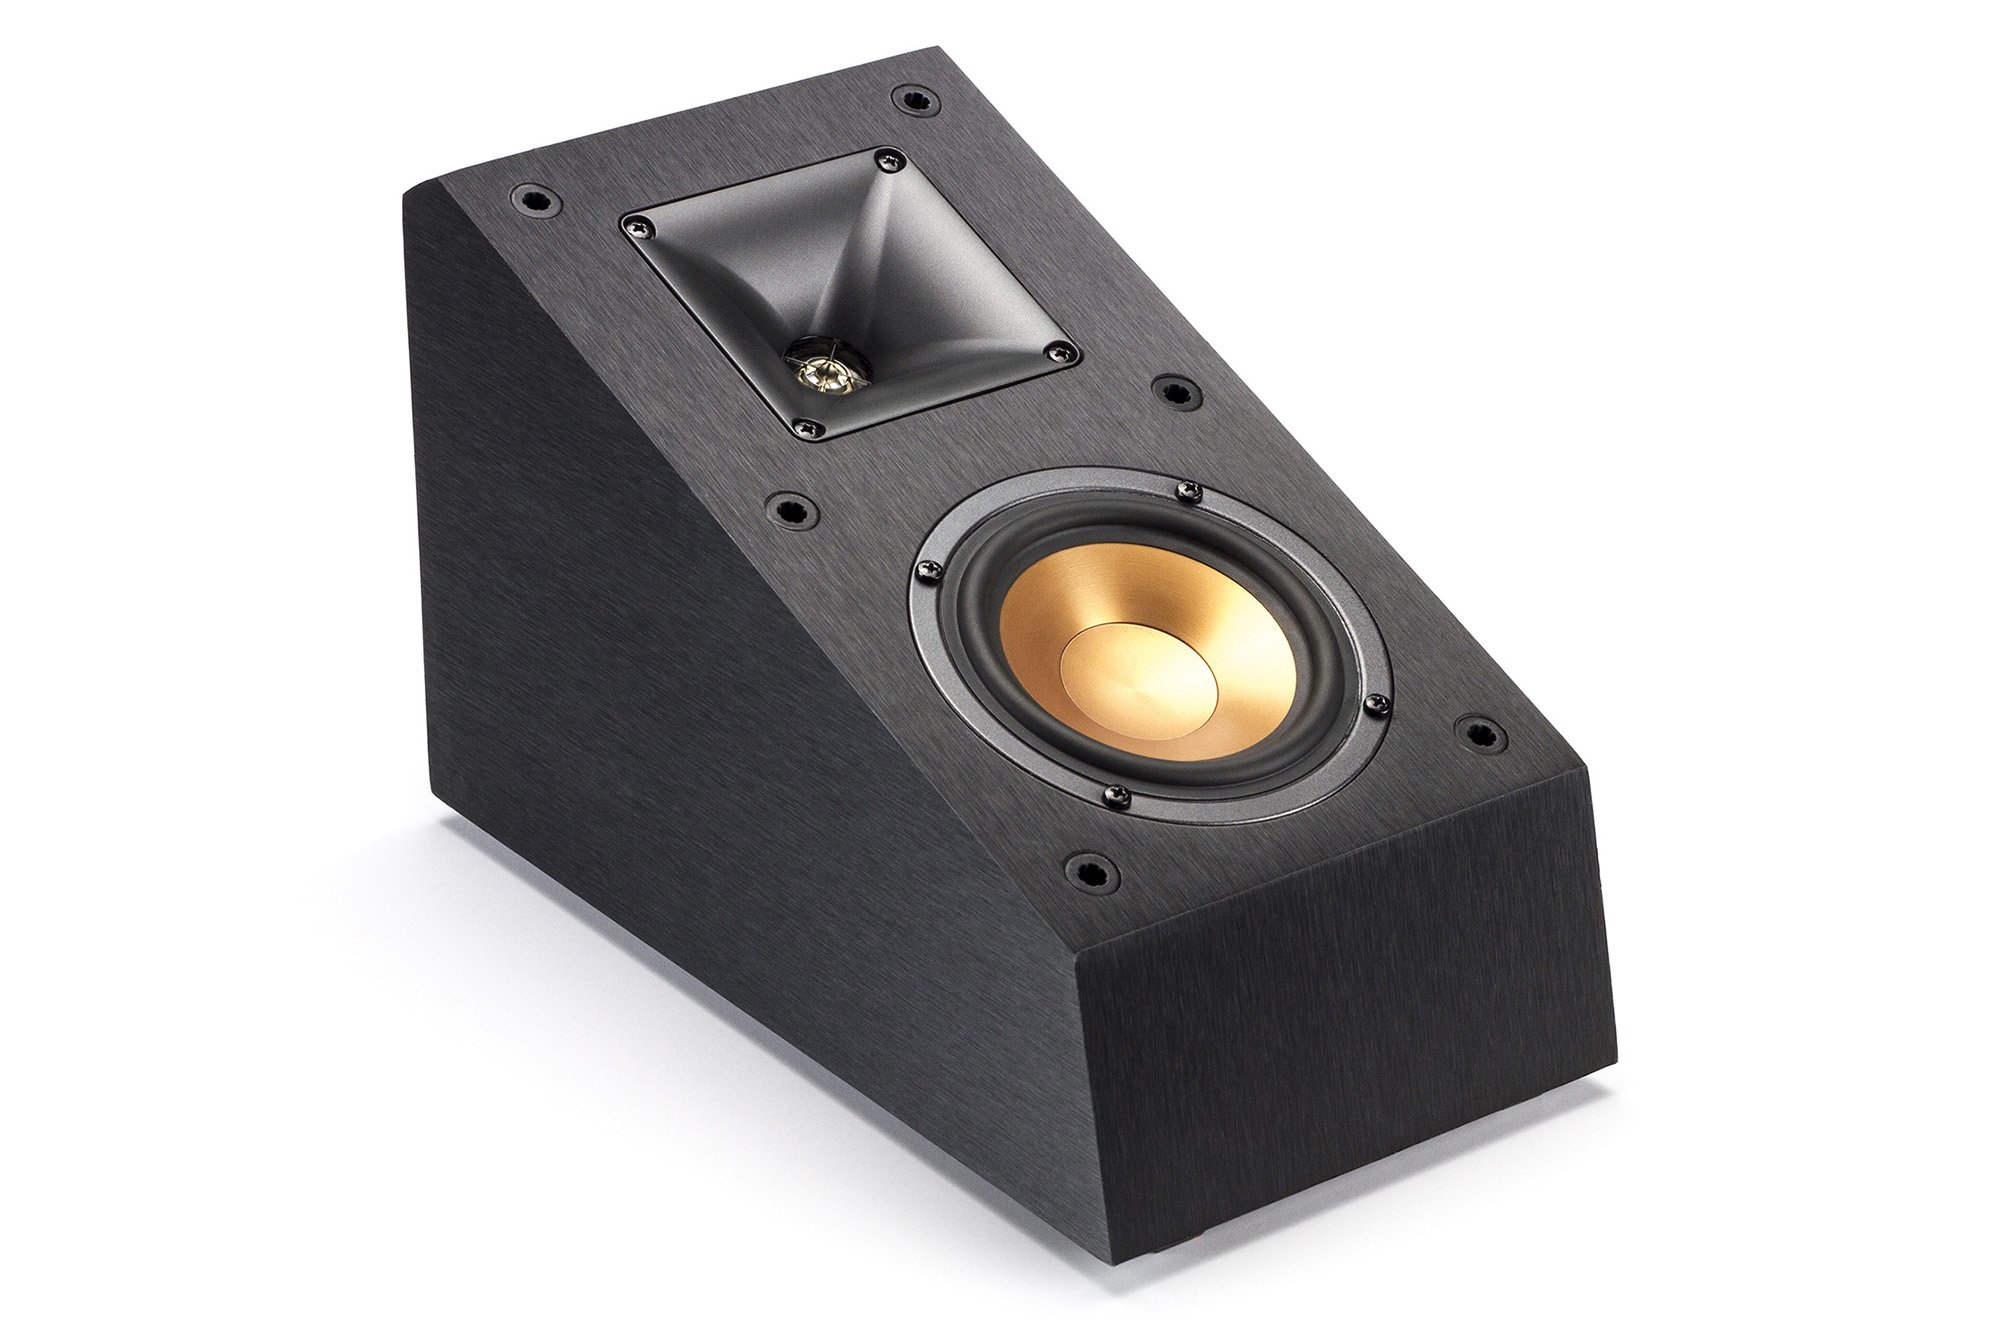 klipsch surround sound speakers. while the klipsch r-14sa elevation speakers can add dolby atmos to existing or be used as a standard side surround sound speaker.